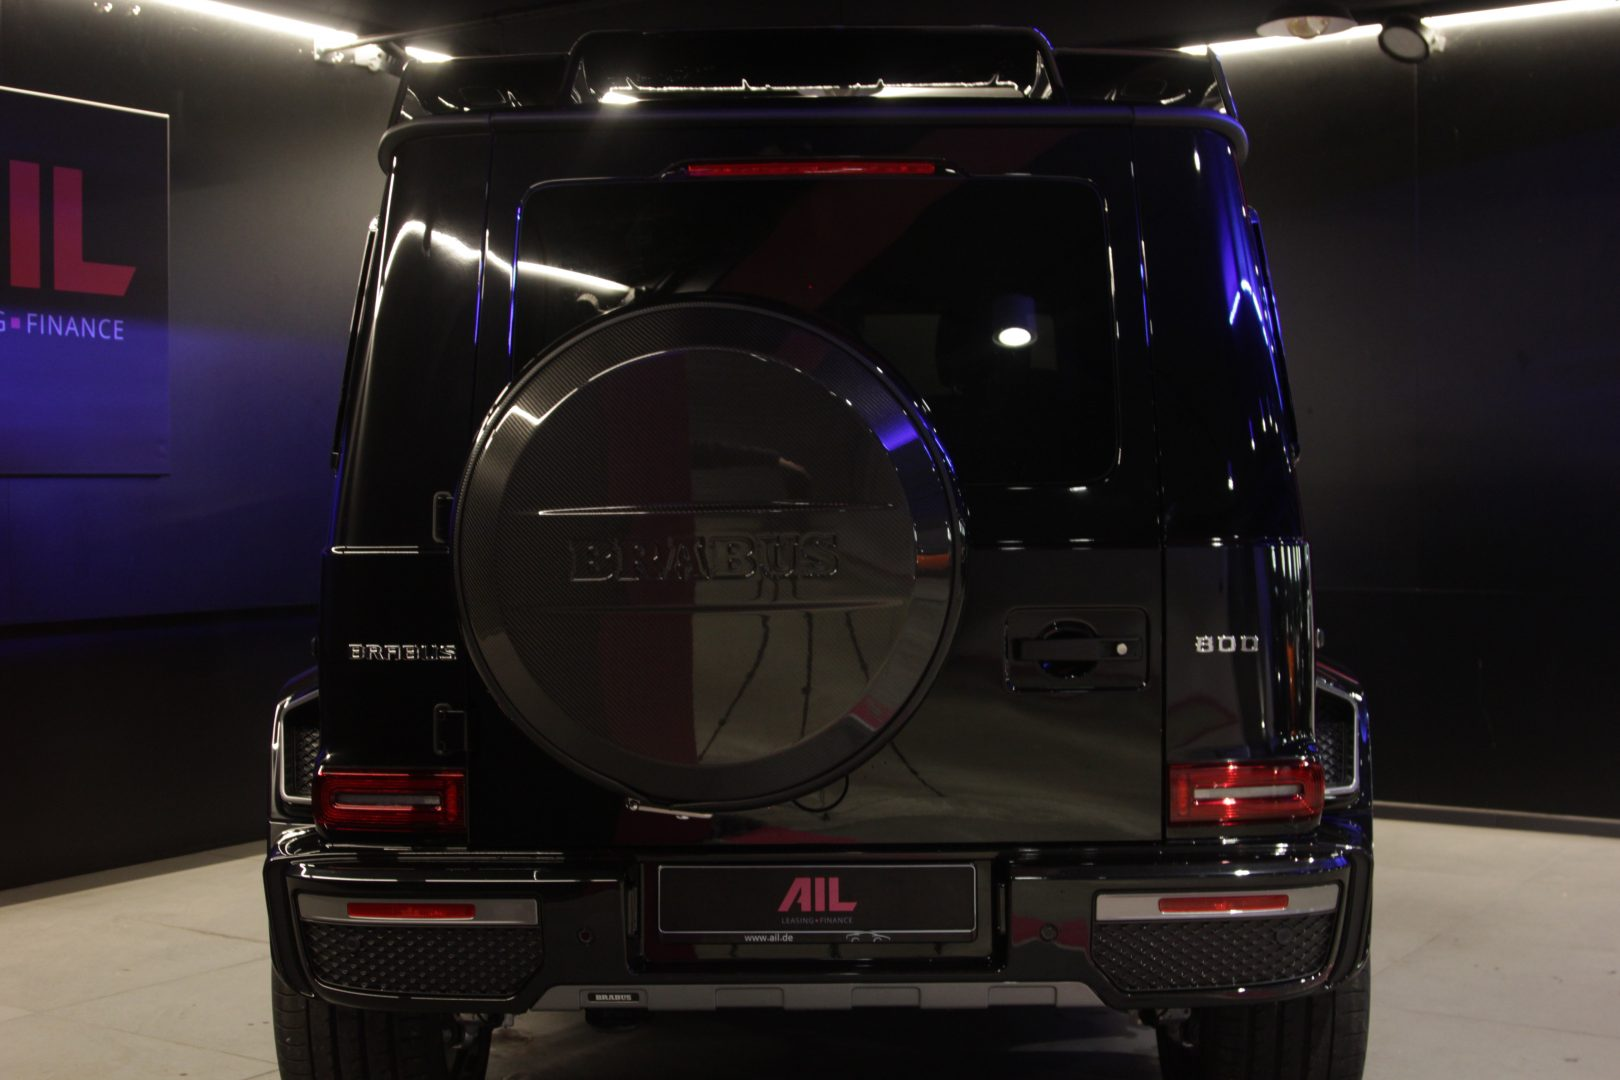 AIL Mercedes-Benz G63 Edition1 BRABUS 800 11